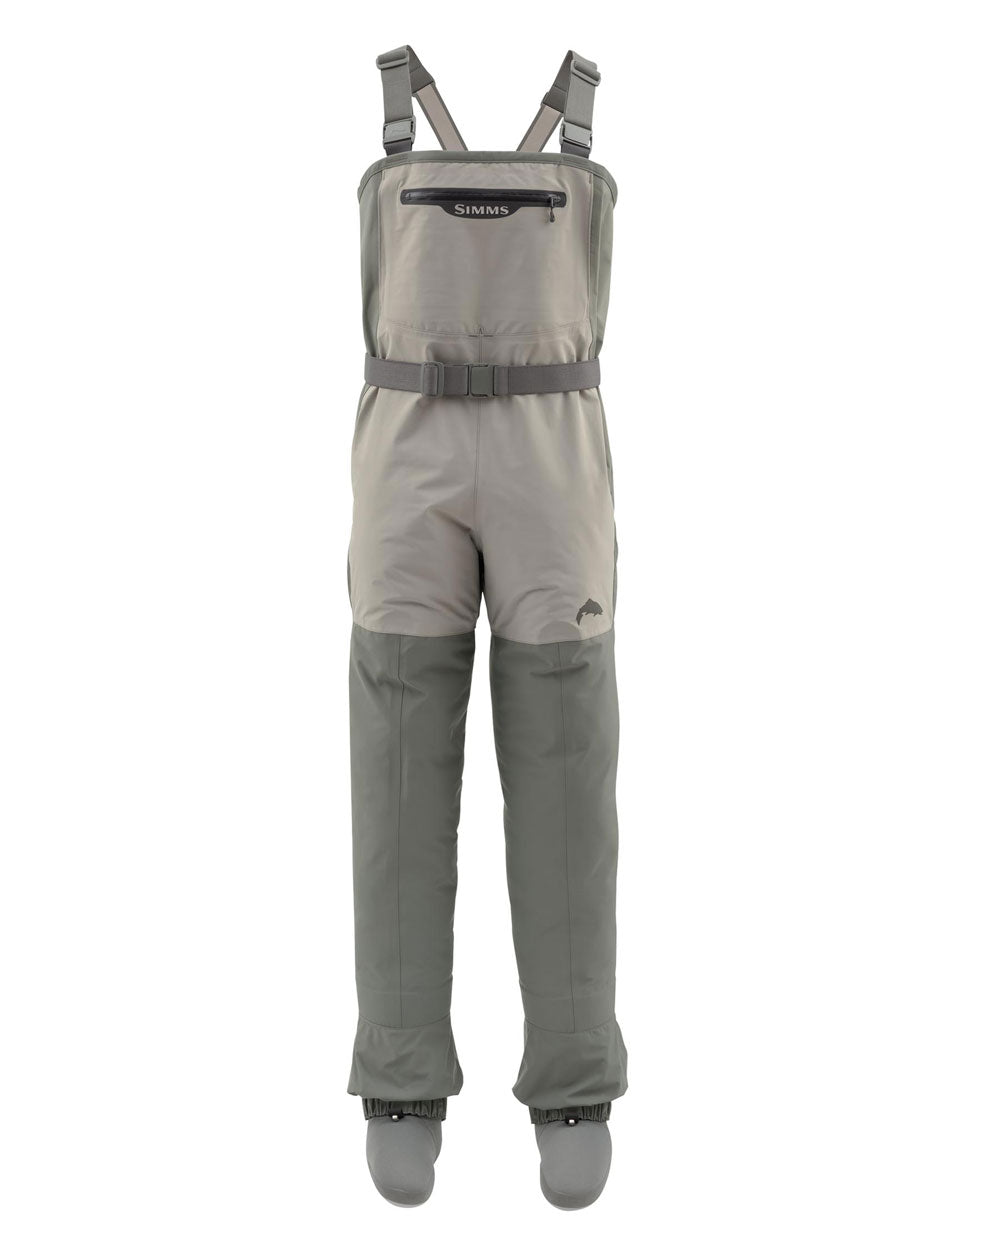 Simms Women's Freestone Waders - Stockingfoot